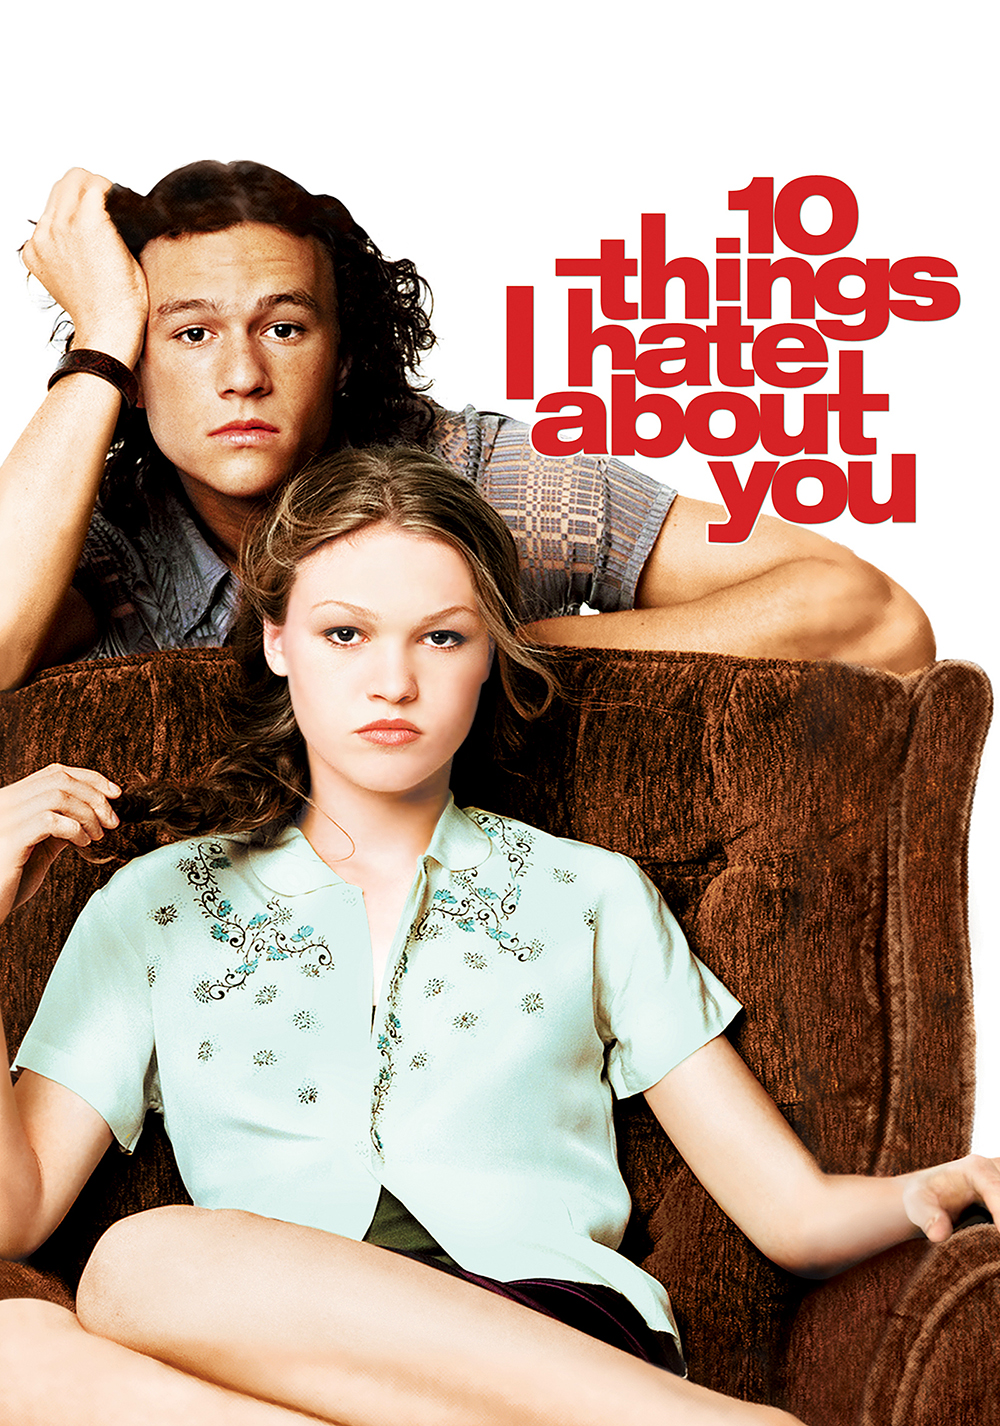 8 - 10 Things I Hate About You (1999)